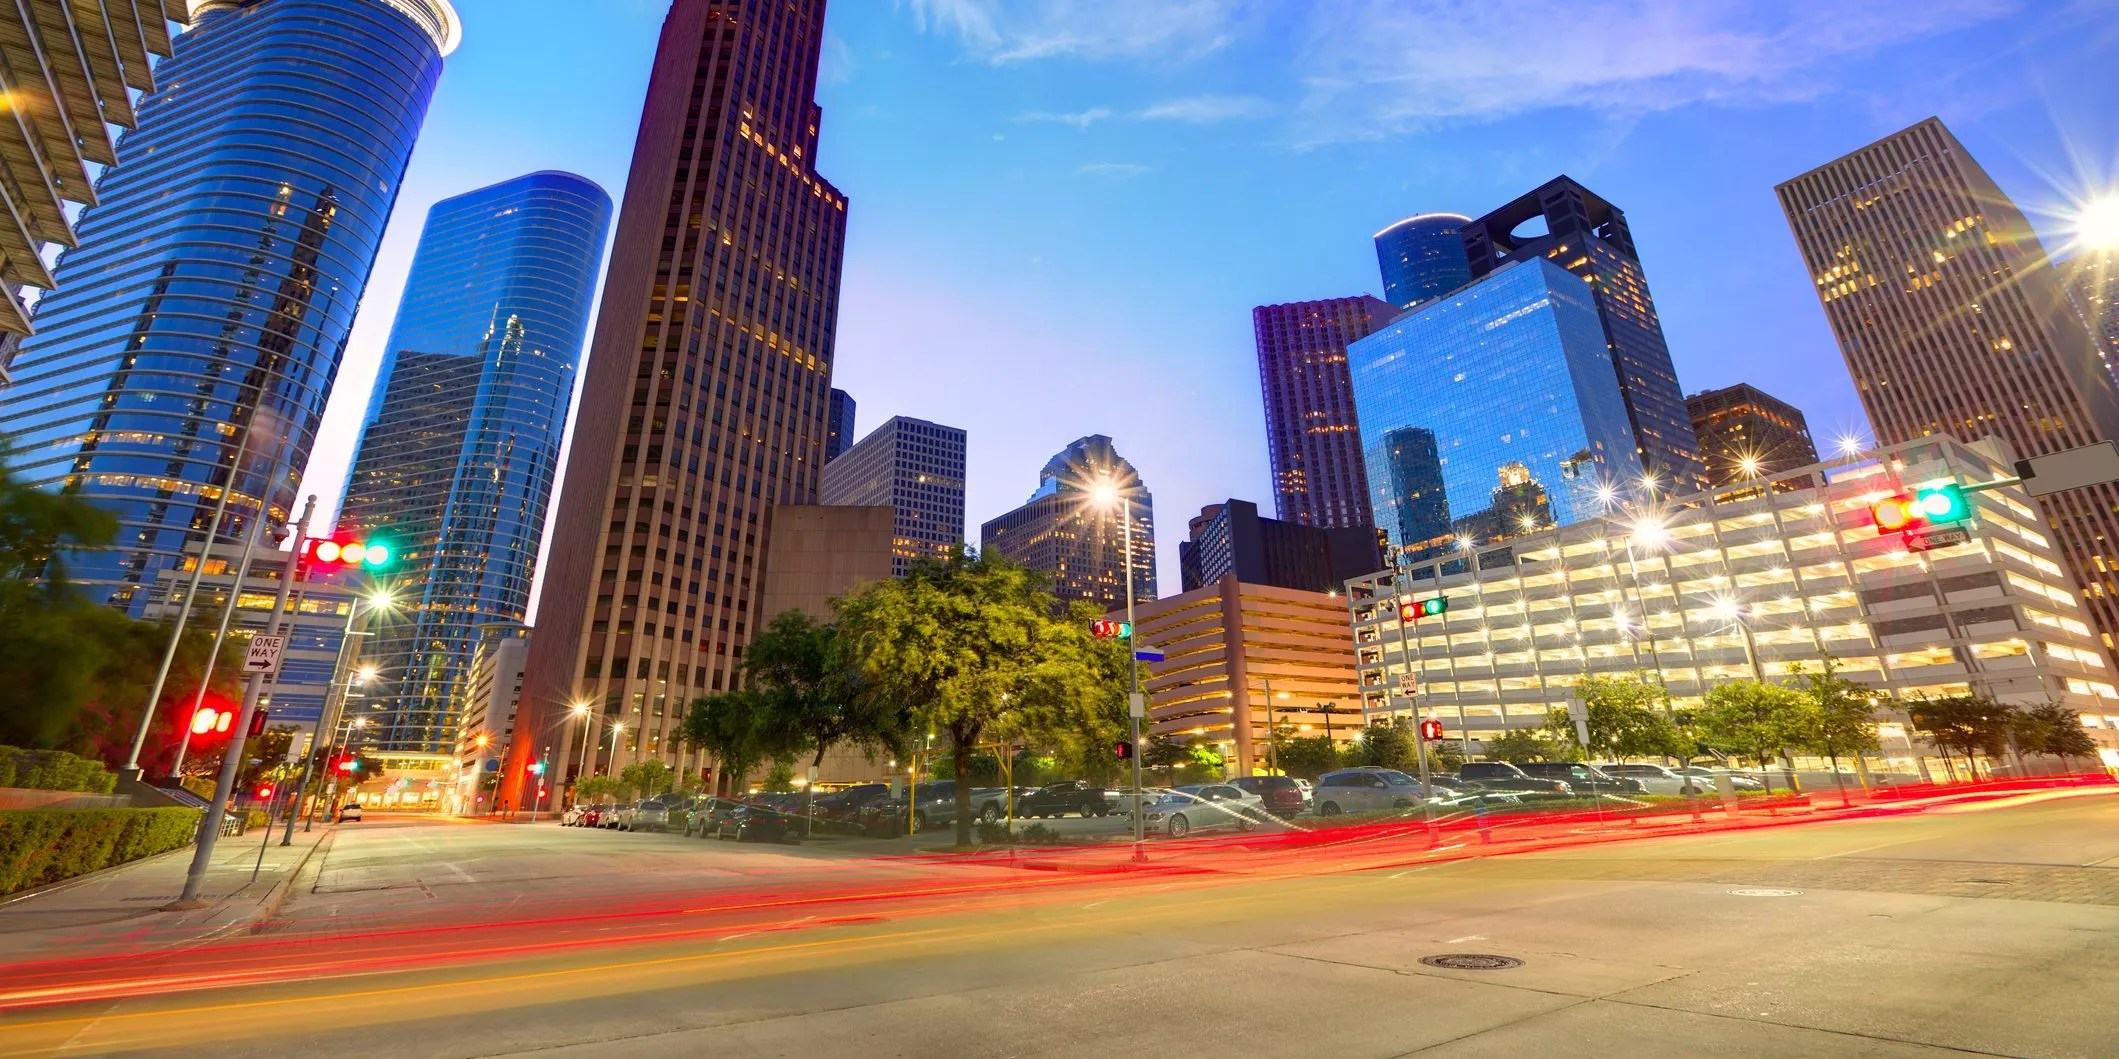 Best Neighborhoods in Houston for Singles & Young Professionals via @extraspace